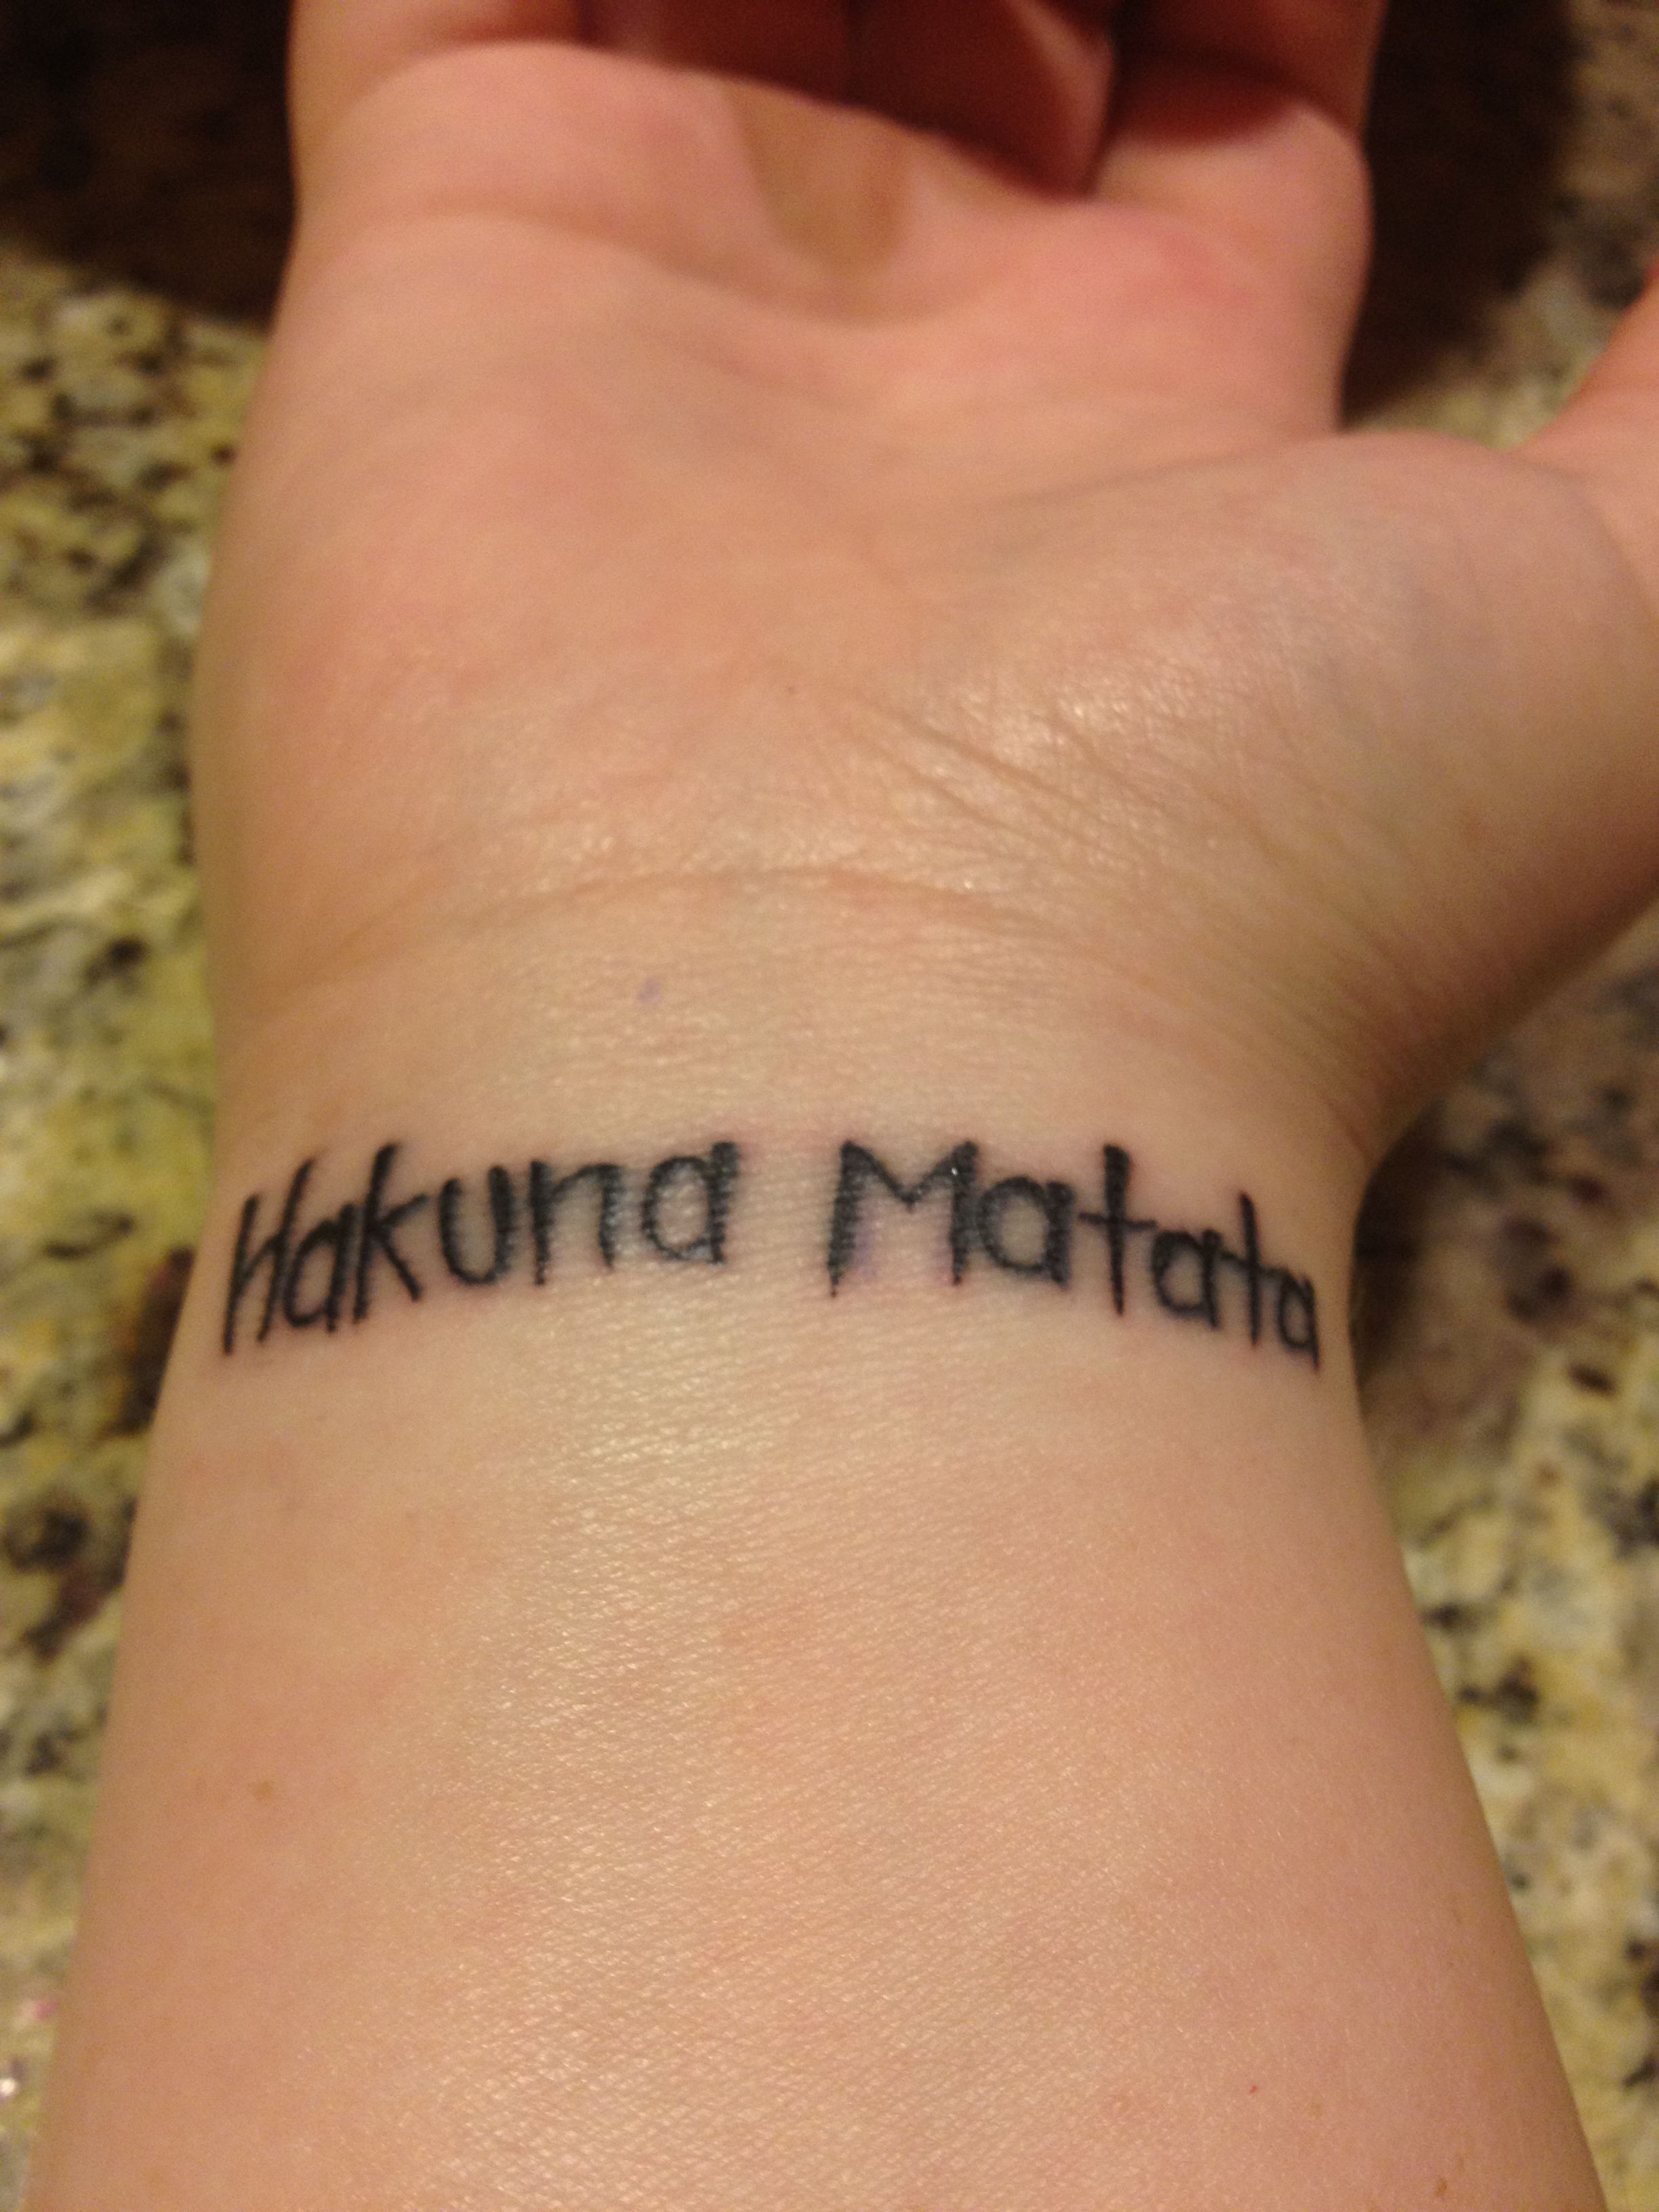 pin hakuna matata tattoo thinking smaller and poked prodded cake on pinterest. Black Bedroom Furniture Sets. Home Design Ideas